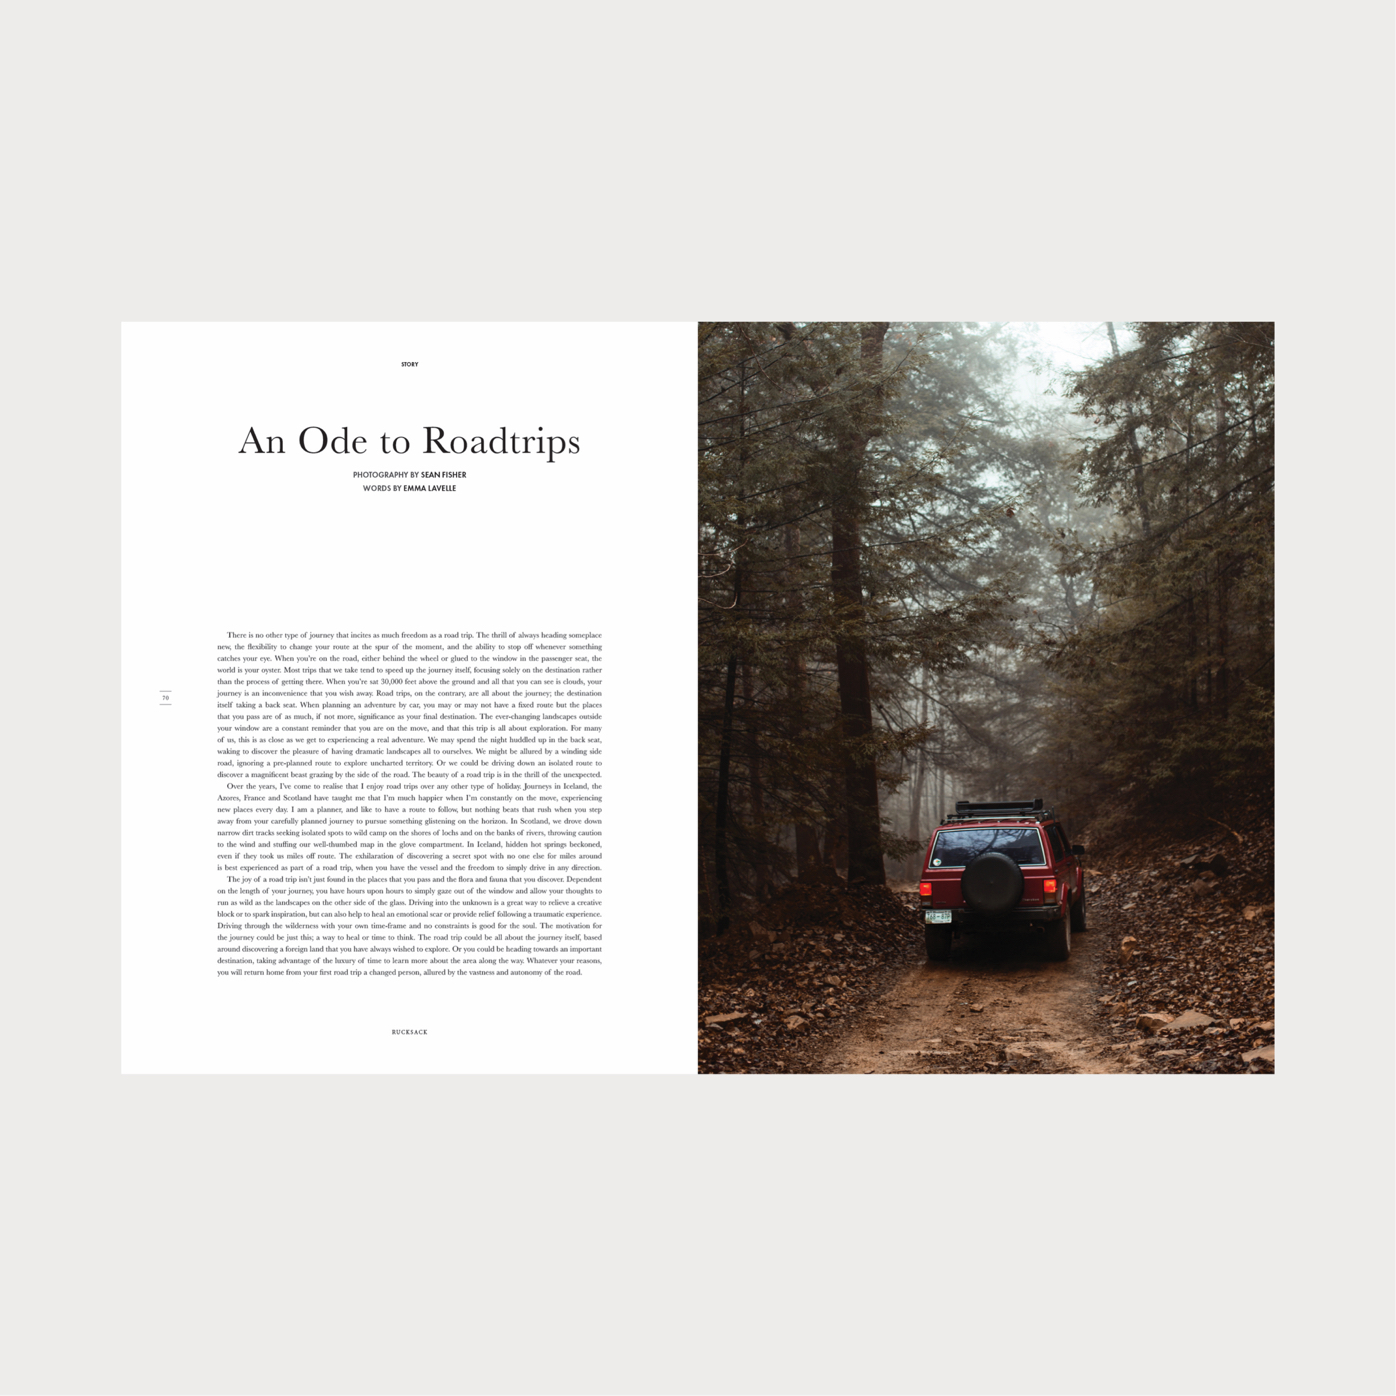 shangri-la-heritage-rucksack-magazine-volume-two-the-journey-issue-page-3-Ode-to-Roadtrips